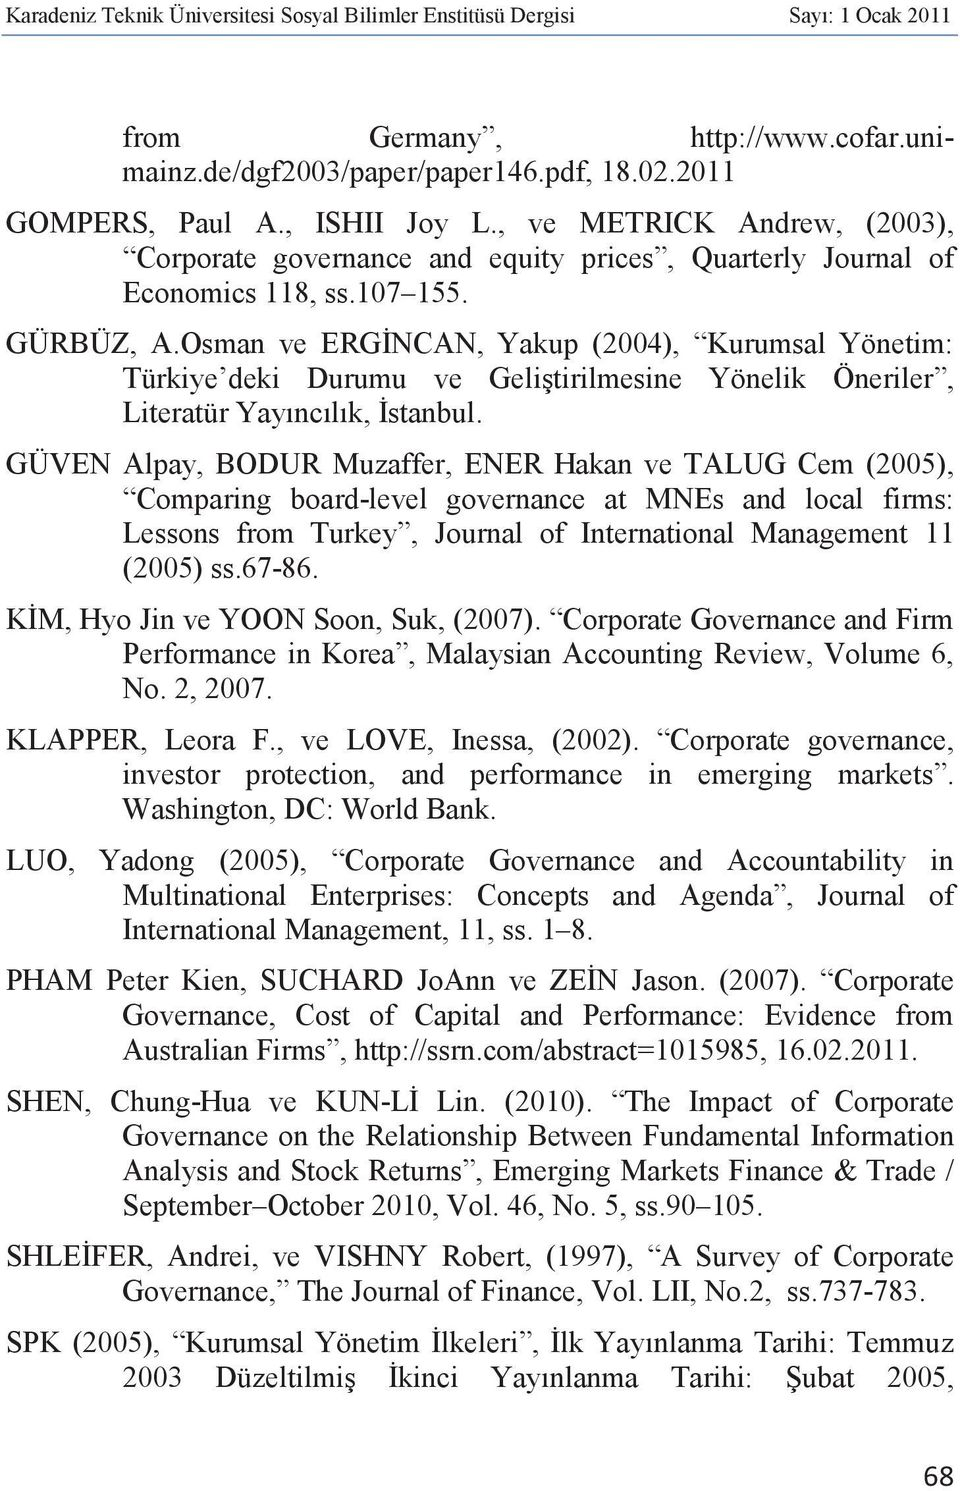 GÜVEN Alpay, BODUR Muzaffer, ENER Hakan ve TALUG Cem (2005), Comparing board-level governance at MNEs and local firms: Lessons from Turkey, Journal of International Management 11 (2005) ss.67-86.